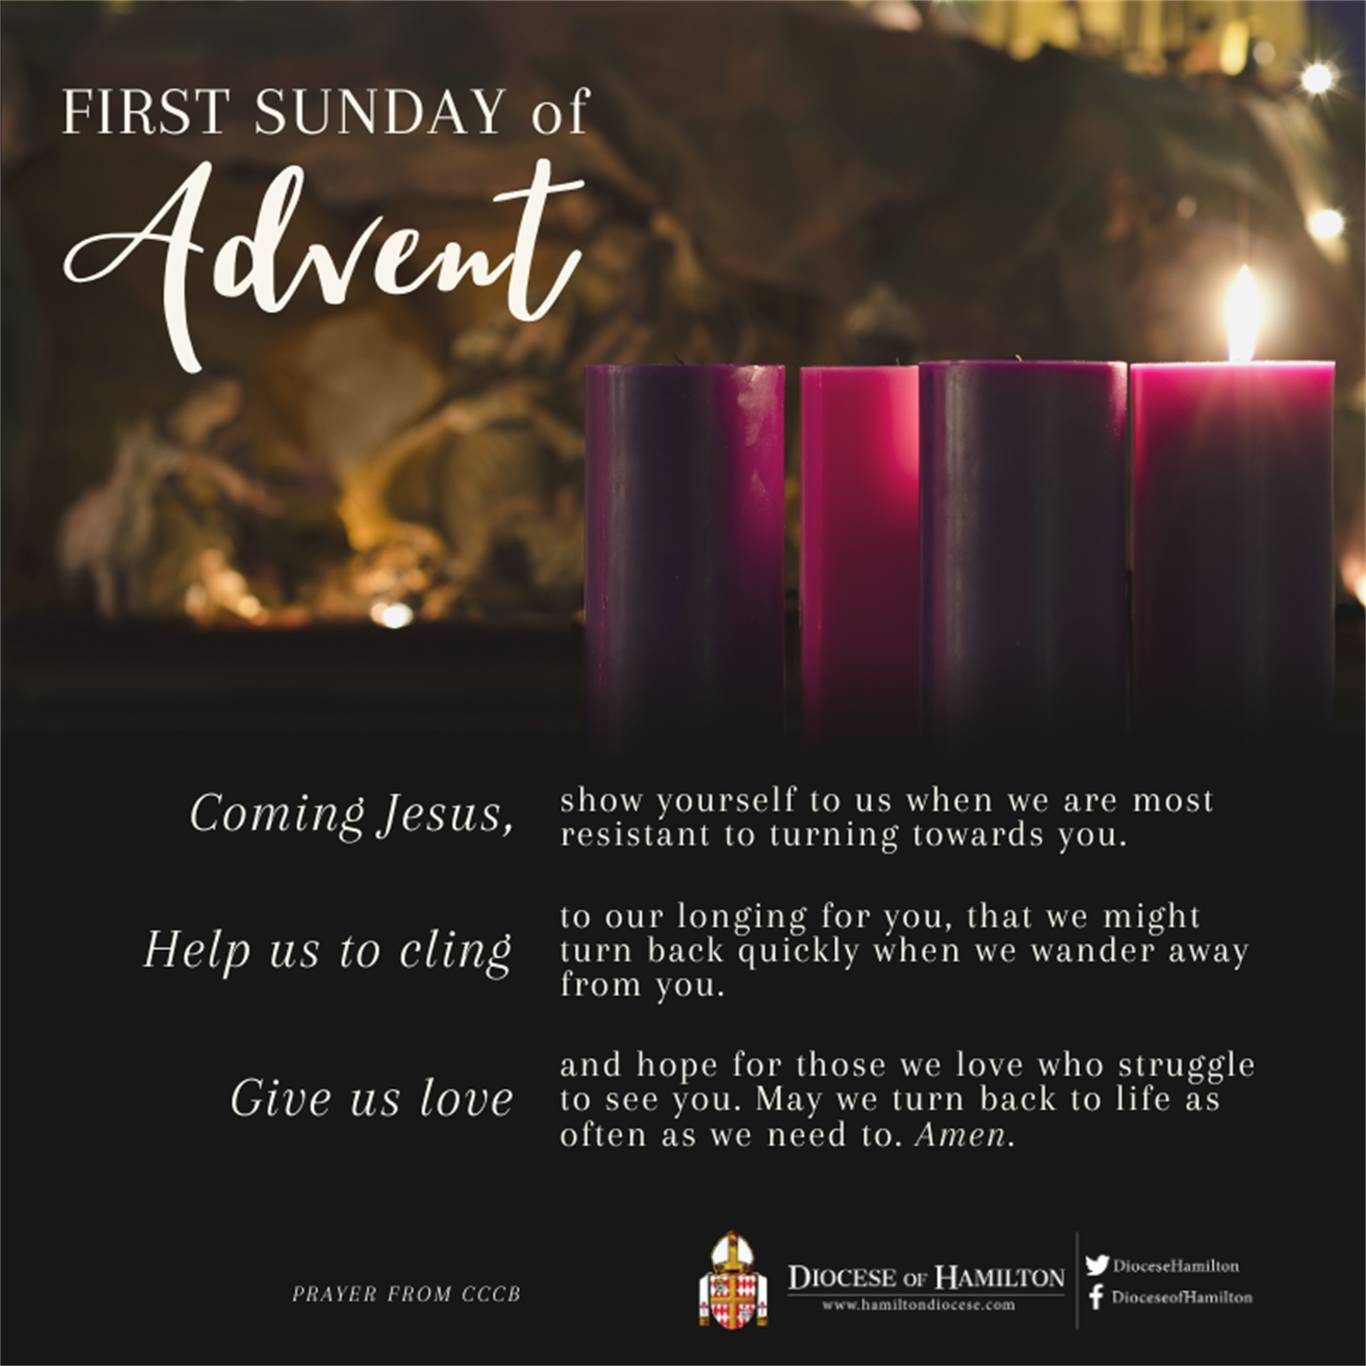 Banner Image for First Sunday of Advent